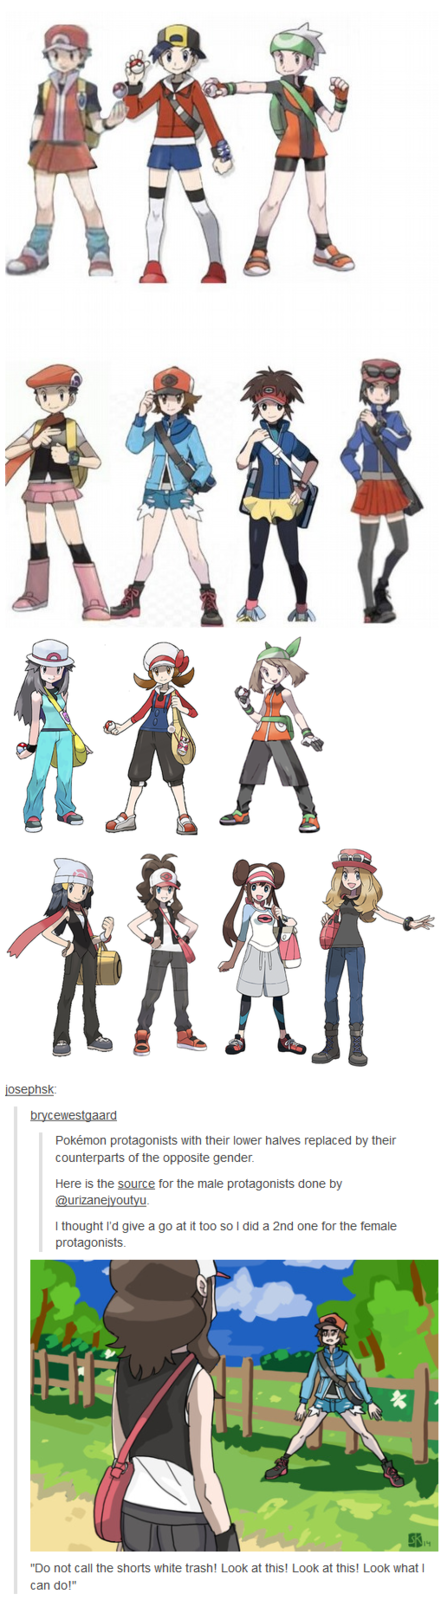 Shorts Are More Comfortable to Wear in Pokemon